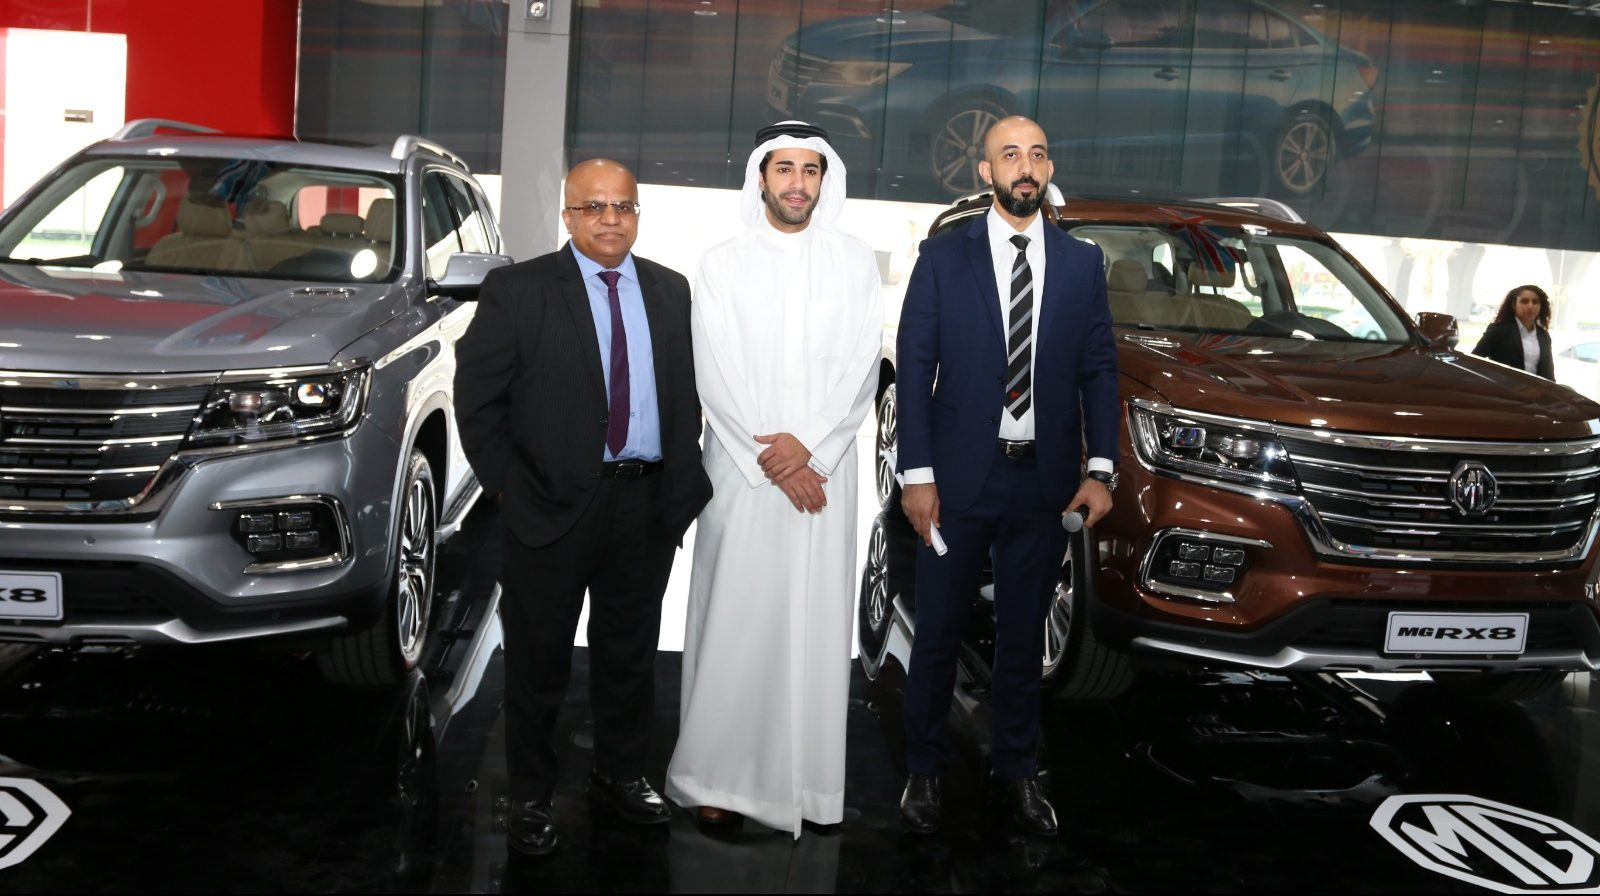 'Zayani Motors' Raise Curtain on All New 'MG RX8'